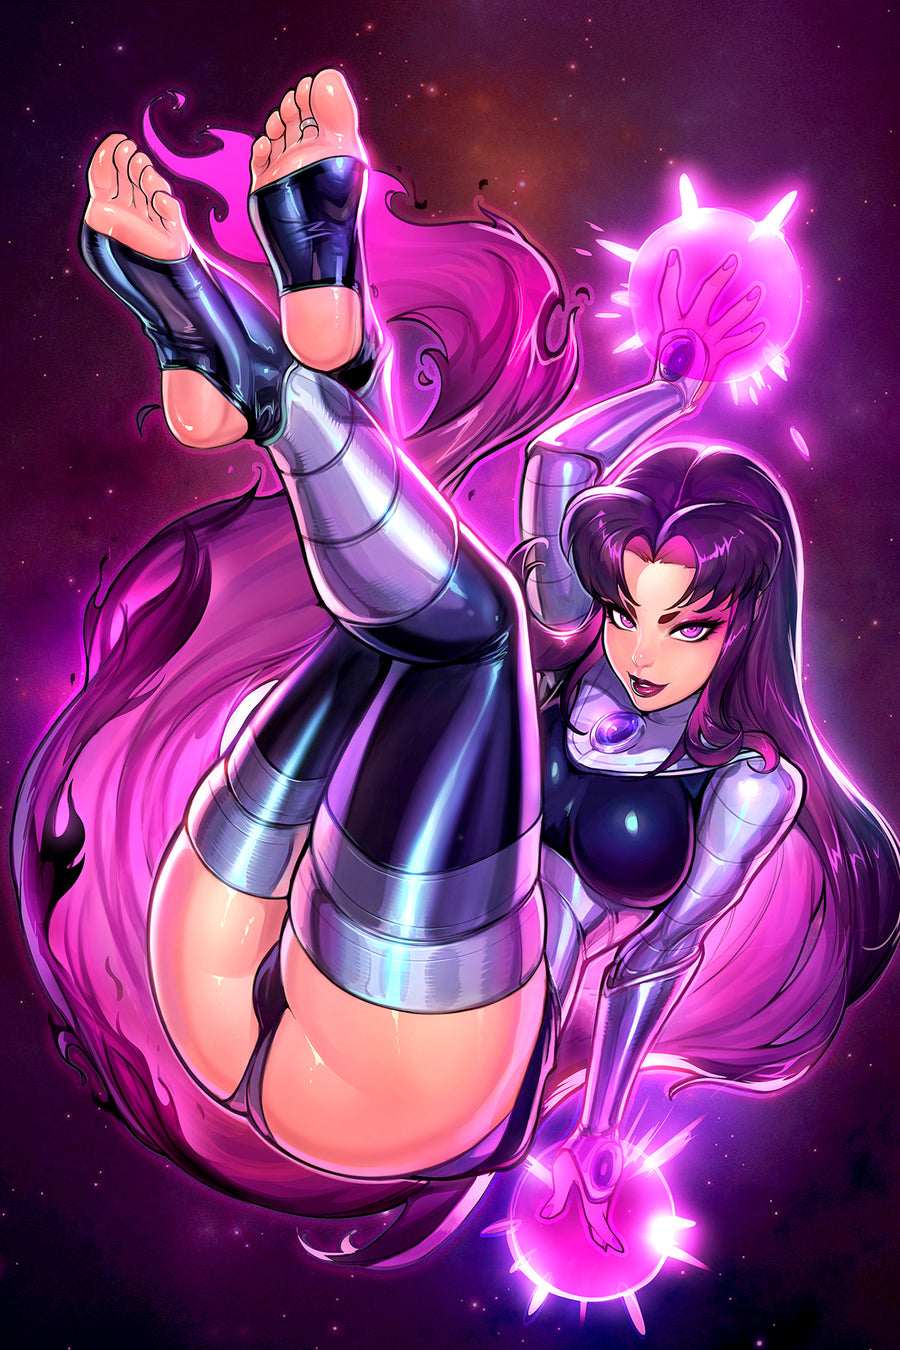 Teen Titan's Blackfire